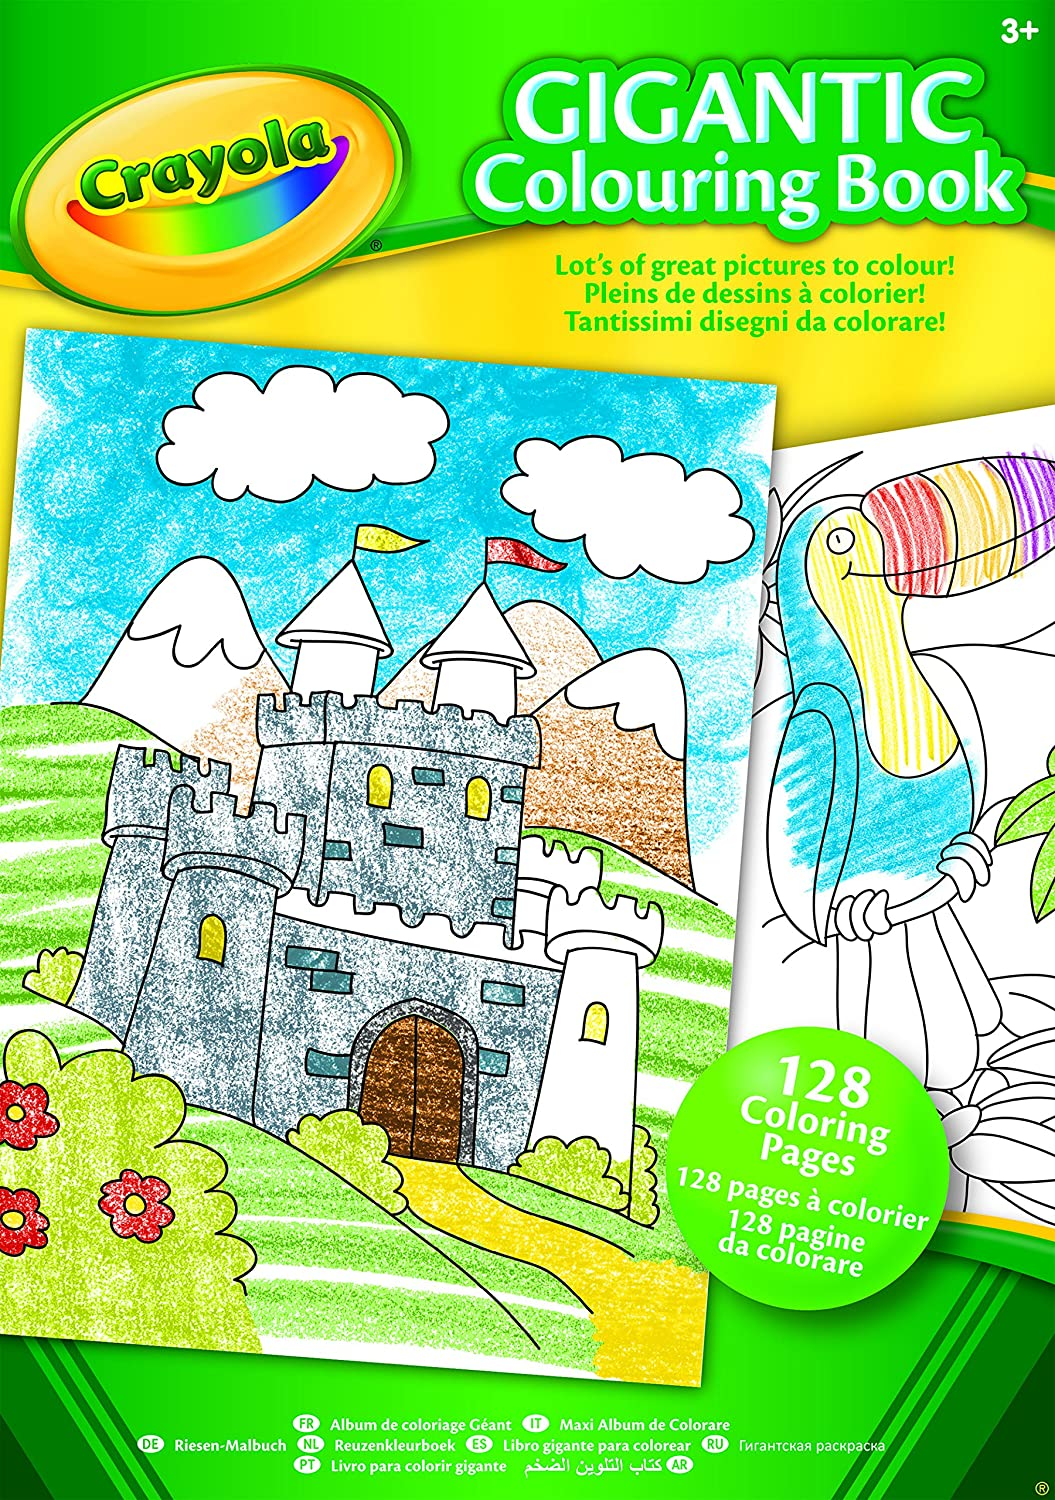 crayola a4 gigantic colouring book amazon co uk toys u0026 games